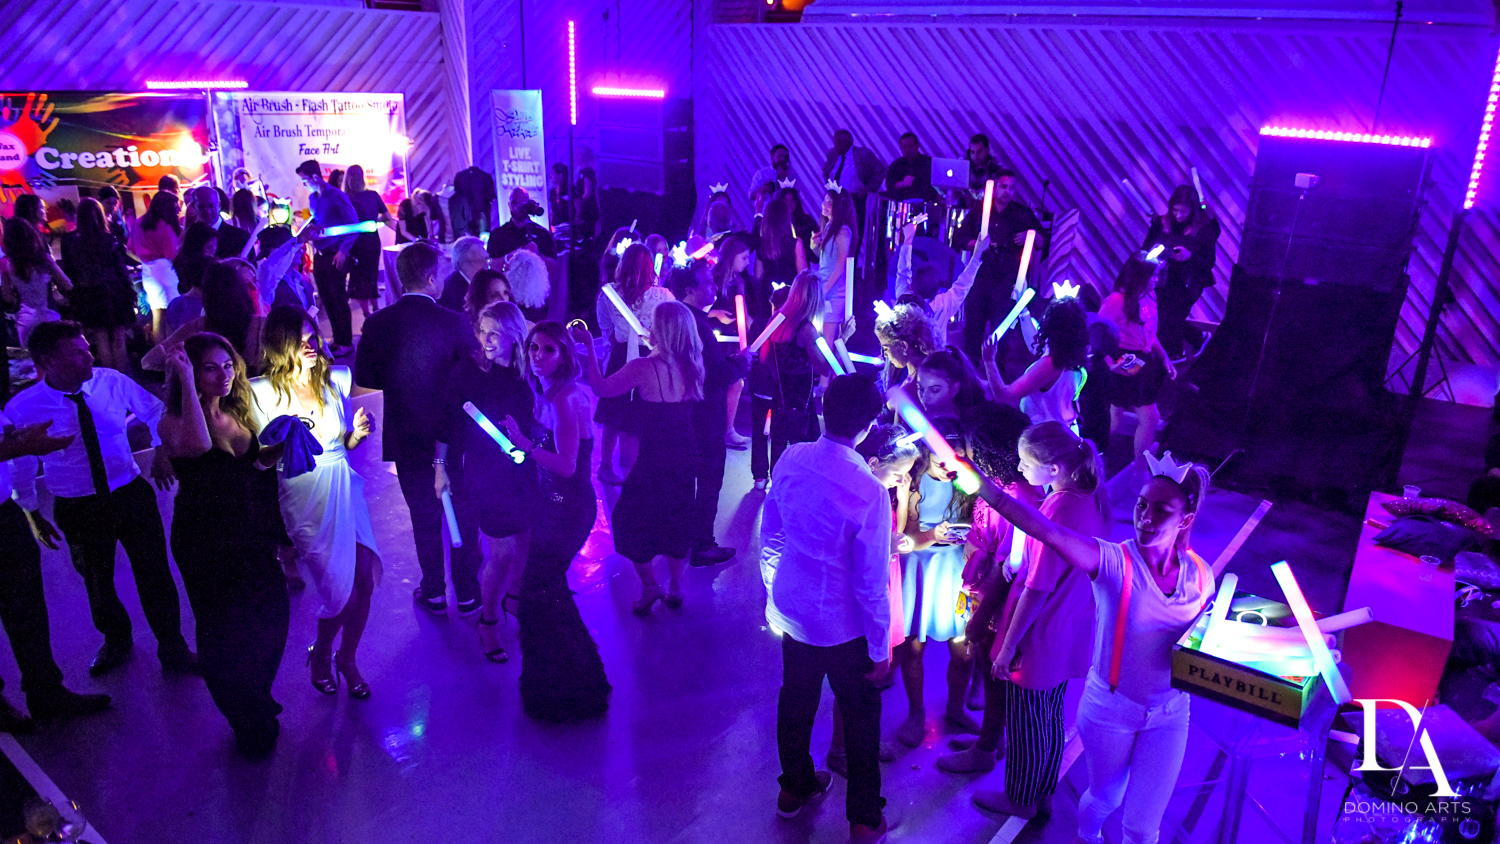 neon party at Luxurious Broadway Theme Bat Mitzvah at New World Symphony in Miami Beach by Domino Arts Photography